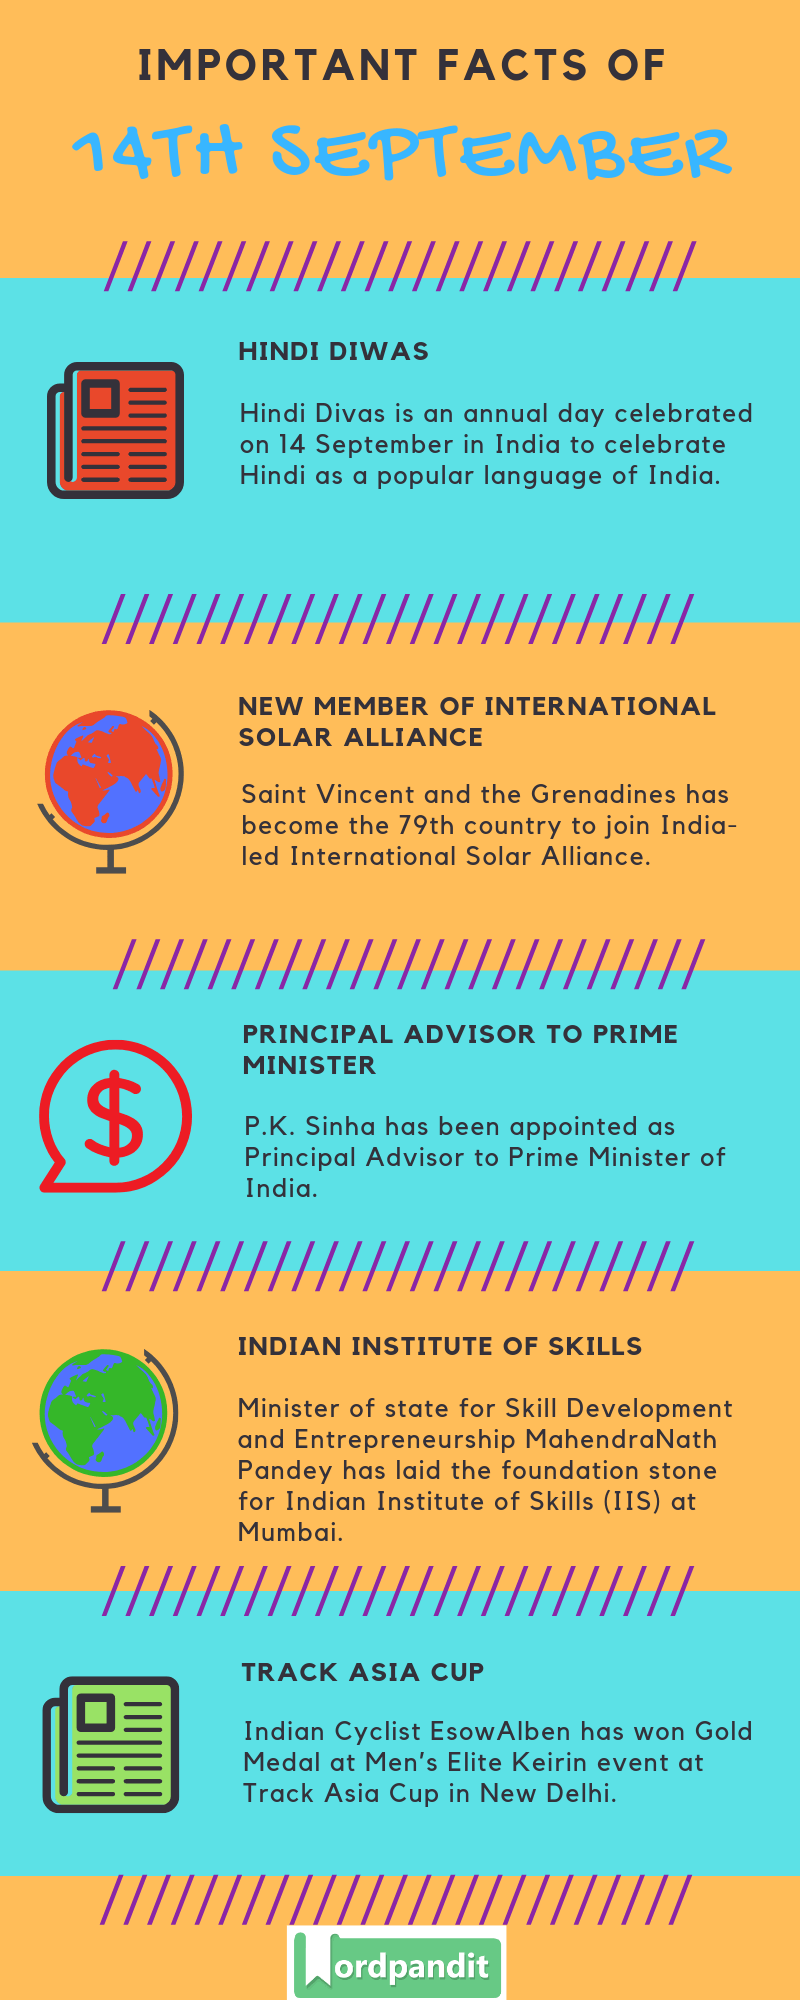 Daily Current Affairs 14 September 2019 Current Affairs Quiz 14 September 2019 Current Affairs Infographic